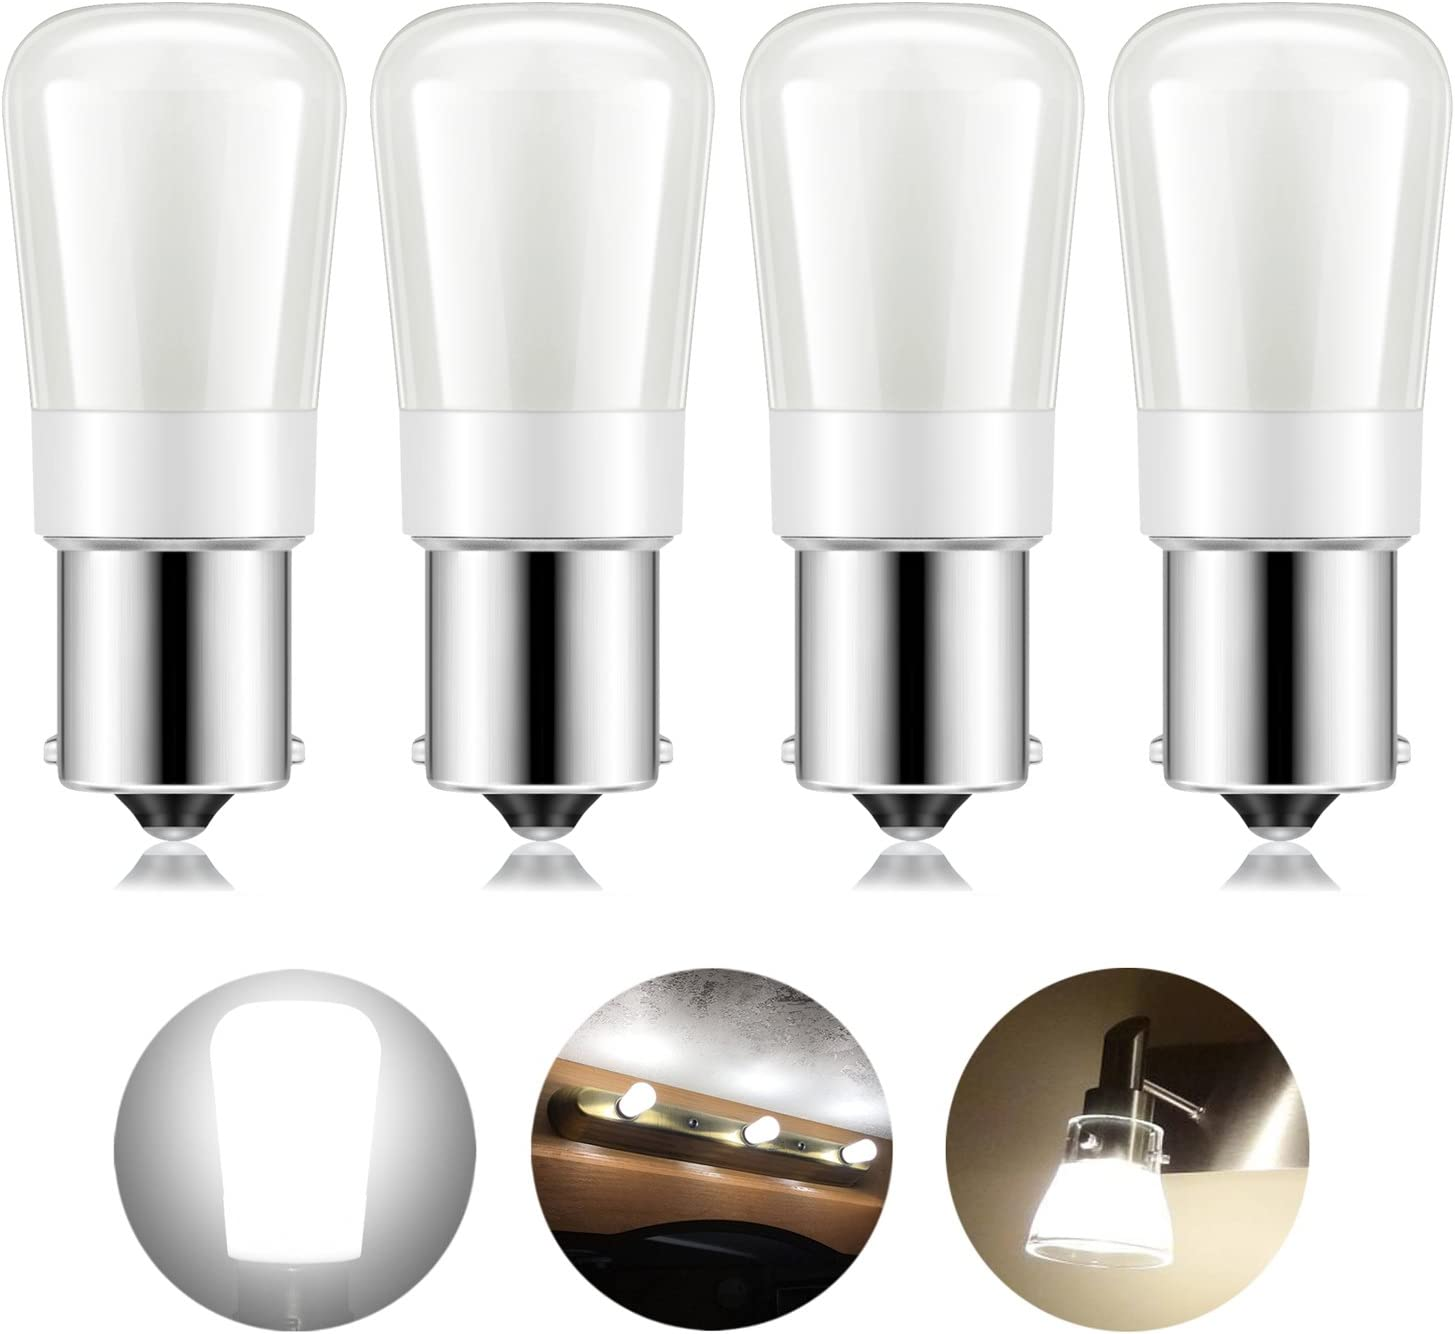 Kohree Auto/RV Led Light Bulbs, 12V 1156 Vanity Light Bulb Replacement 20-99/1141 / BA15S LED Bulb for RV Camper Trailer Motorhome 5th Wheel and Marine Boat Natural White (4Pack)